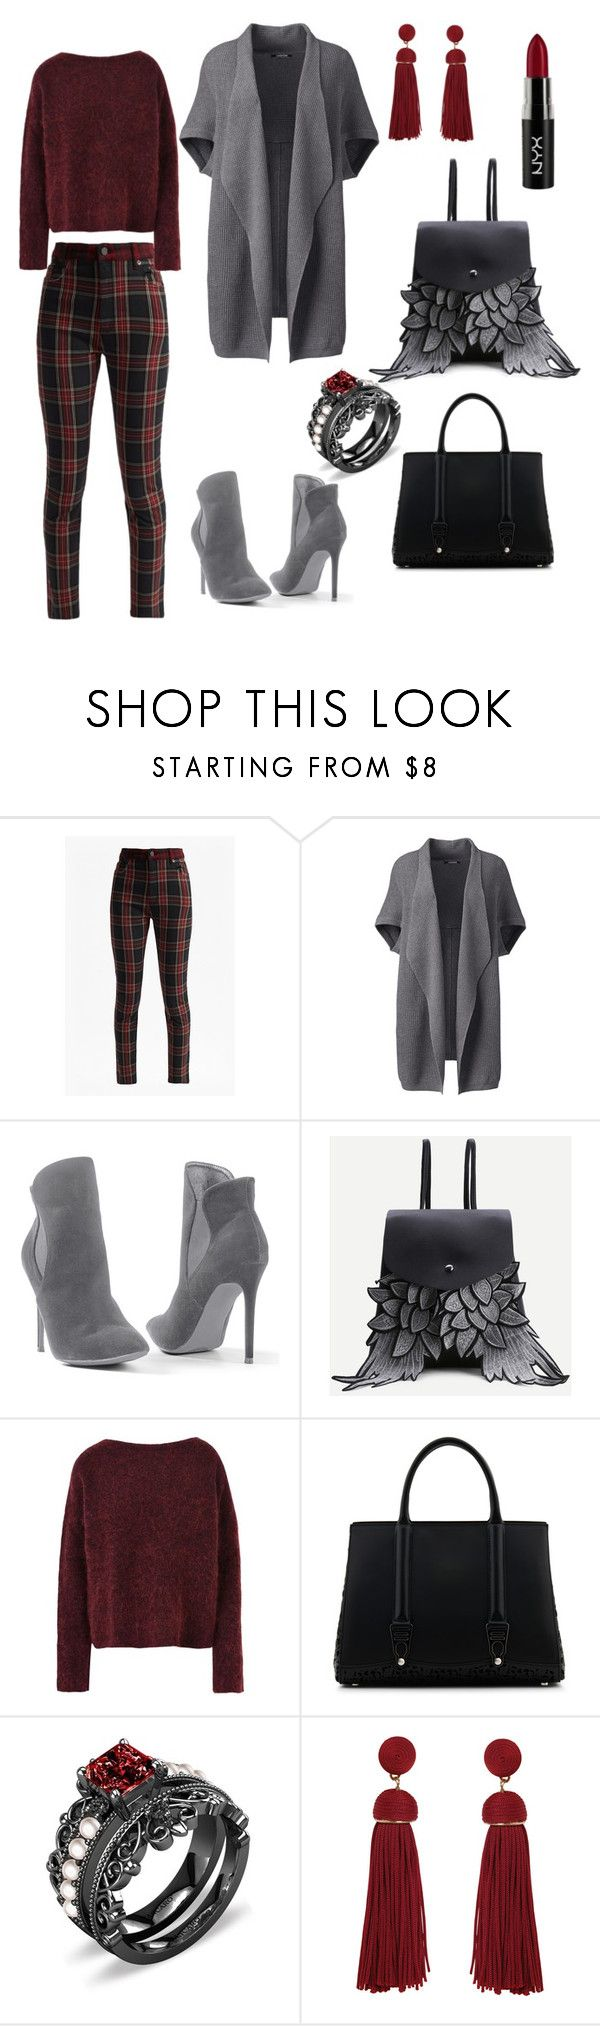 """Untitled #10"" by t7atti ❤ liked on Polyvore featuring French Connection, Lands' End, Venus, 8, La Perla, Humble Chic, NYX and plus size clothing"